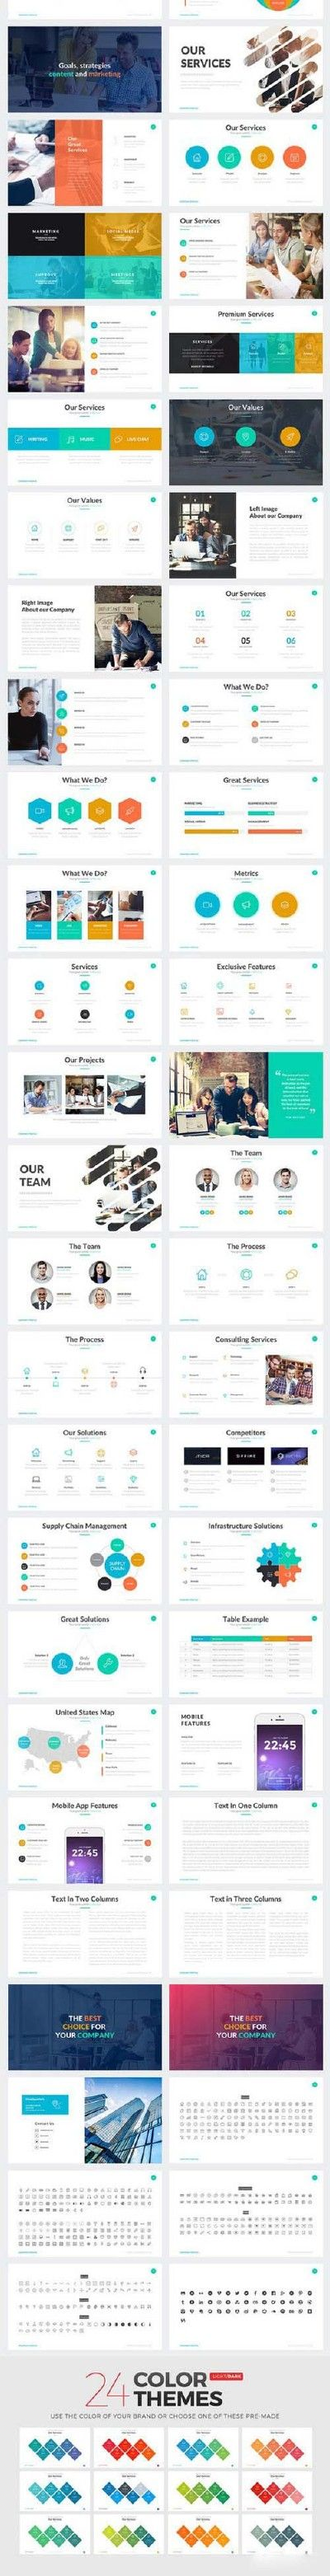 Company Profile Powerpoint Template 800462